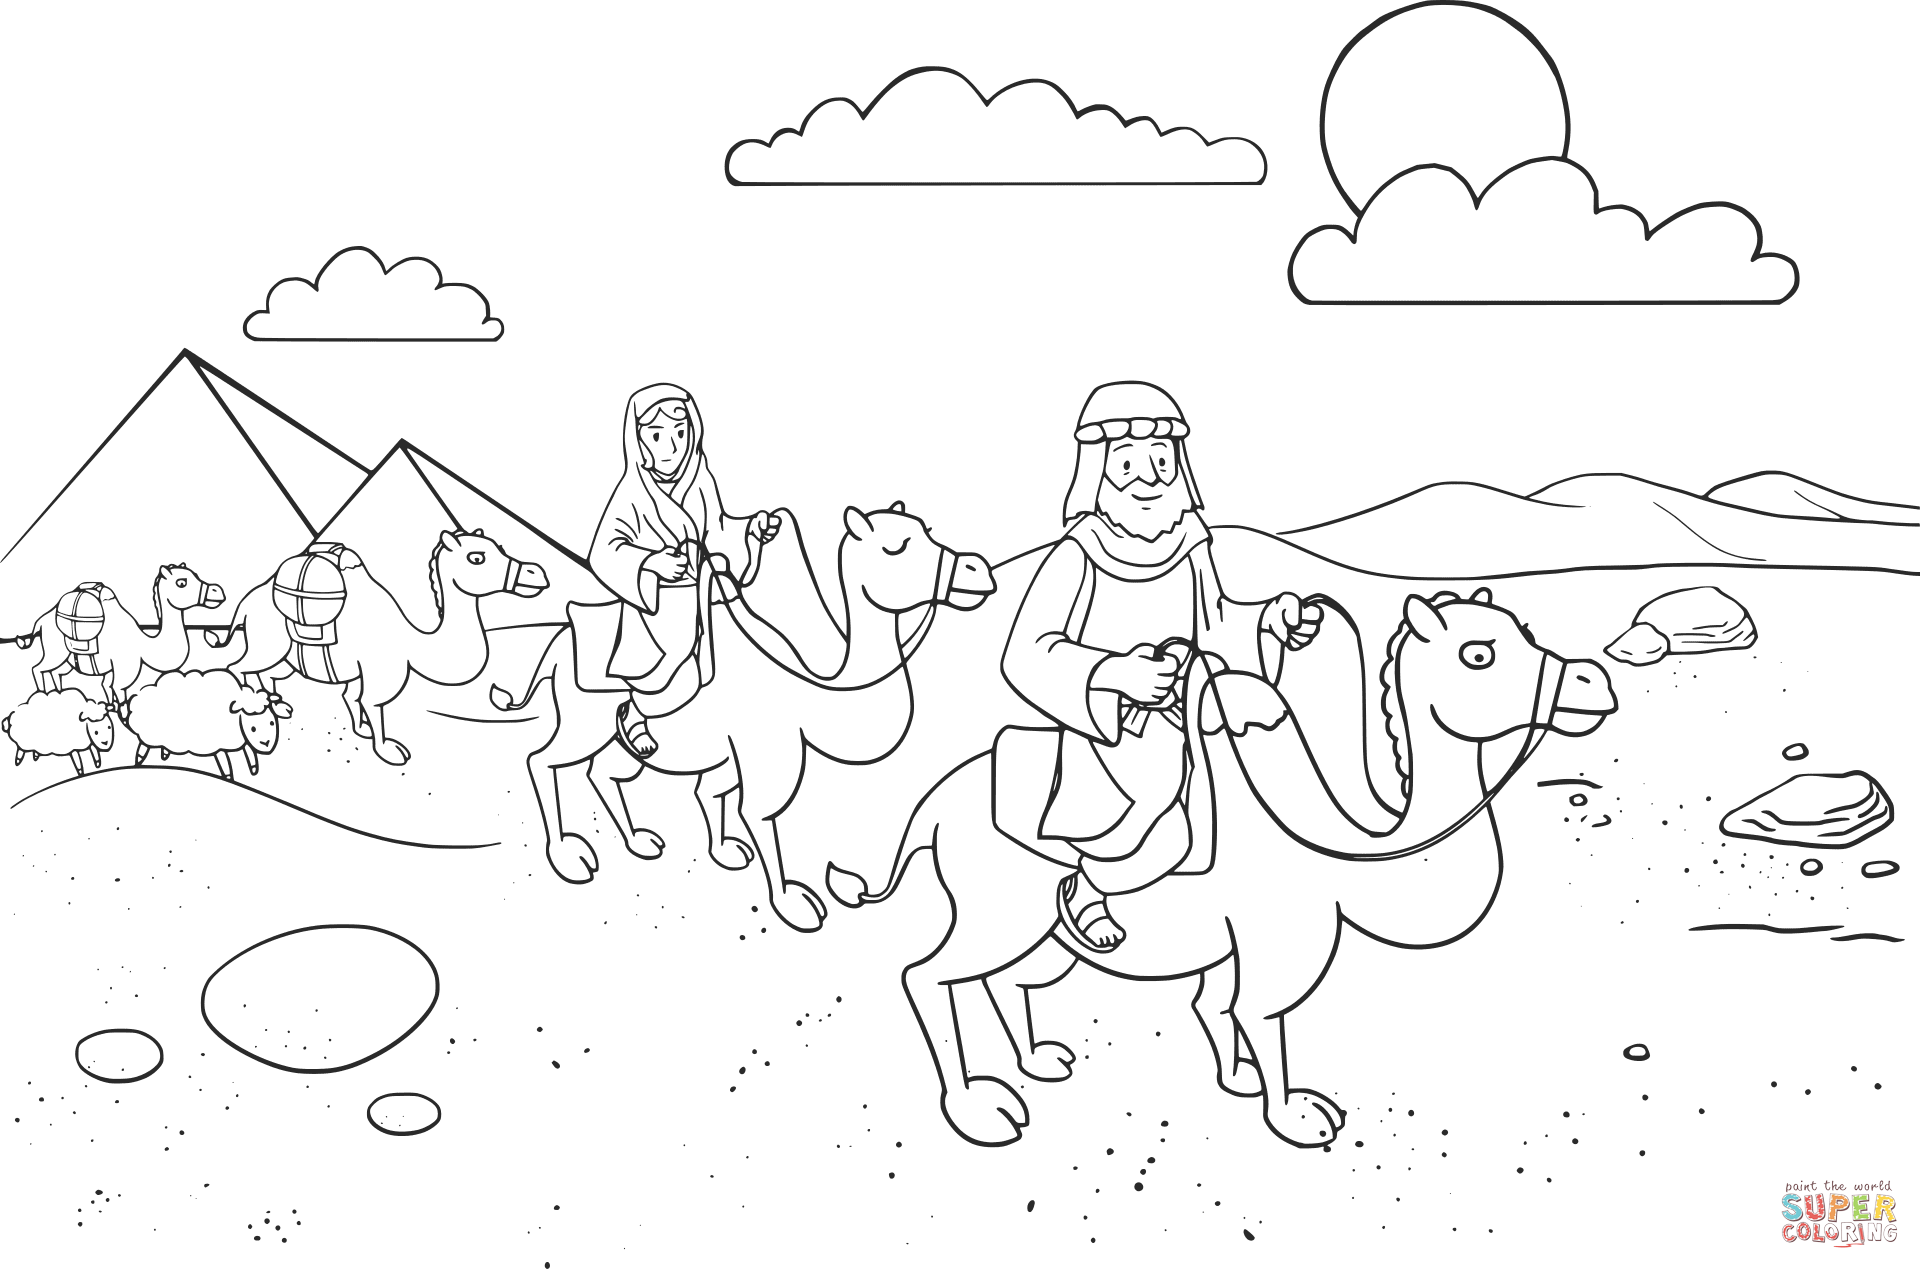 Abram Amp Sarai Leaving Egypt Coloring Page From Abraham Category Select From Printable